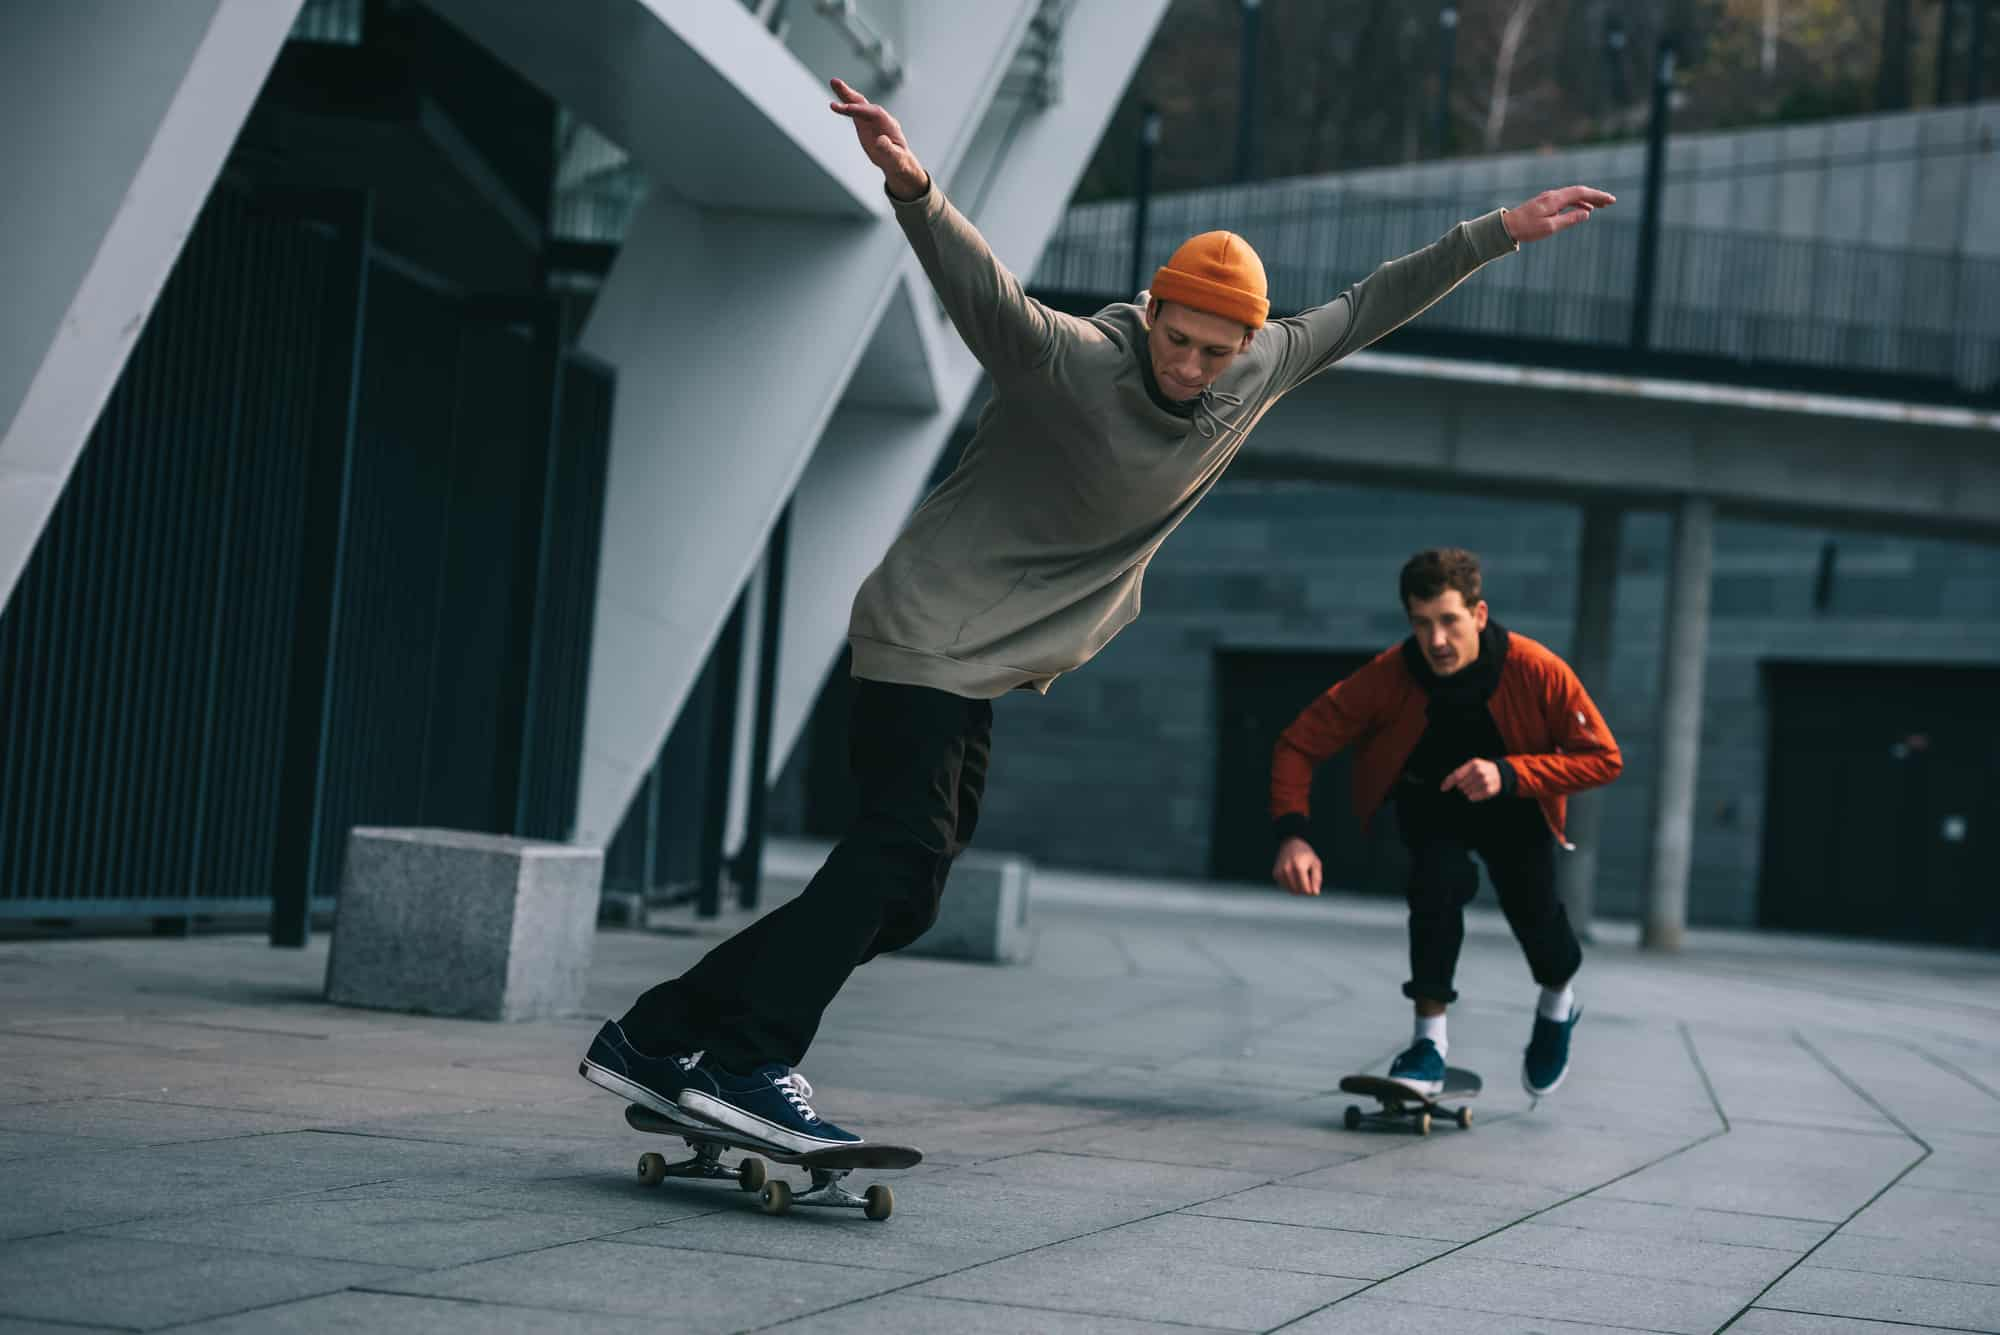 How Much Do Pro Skateboarders Make